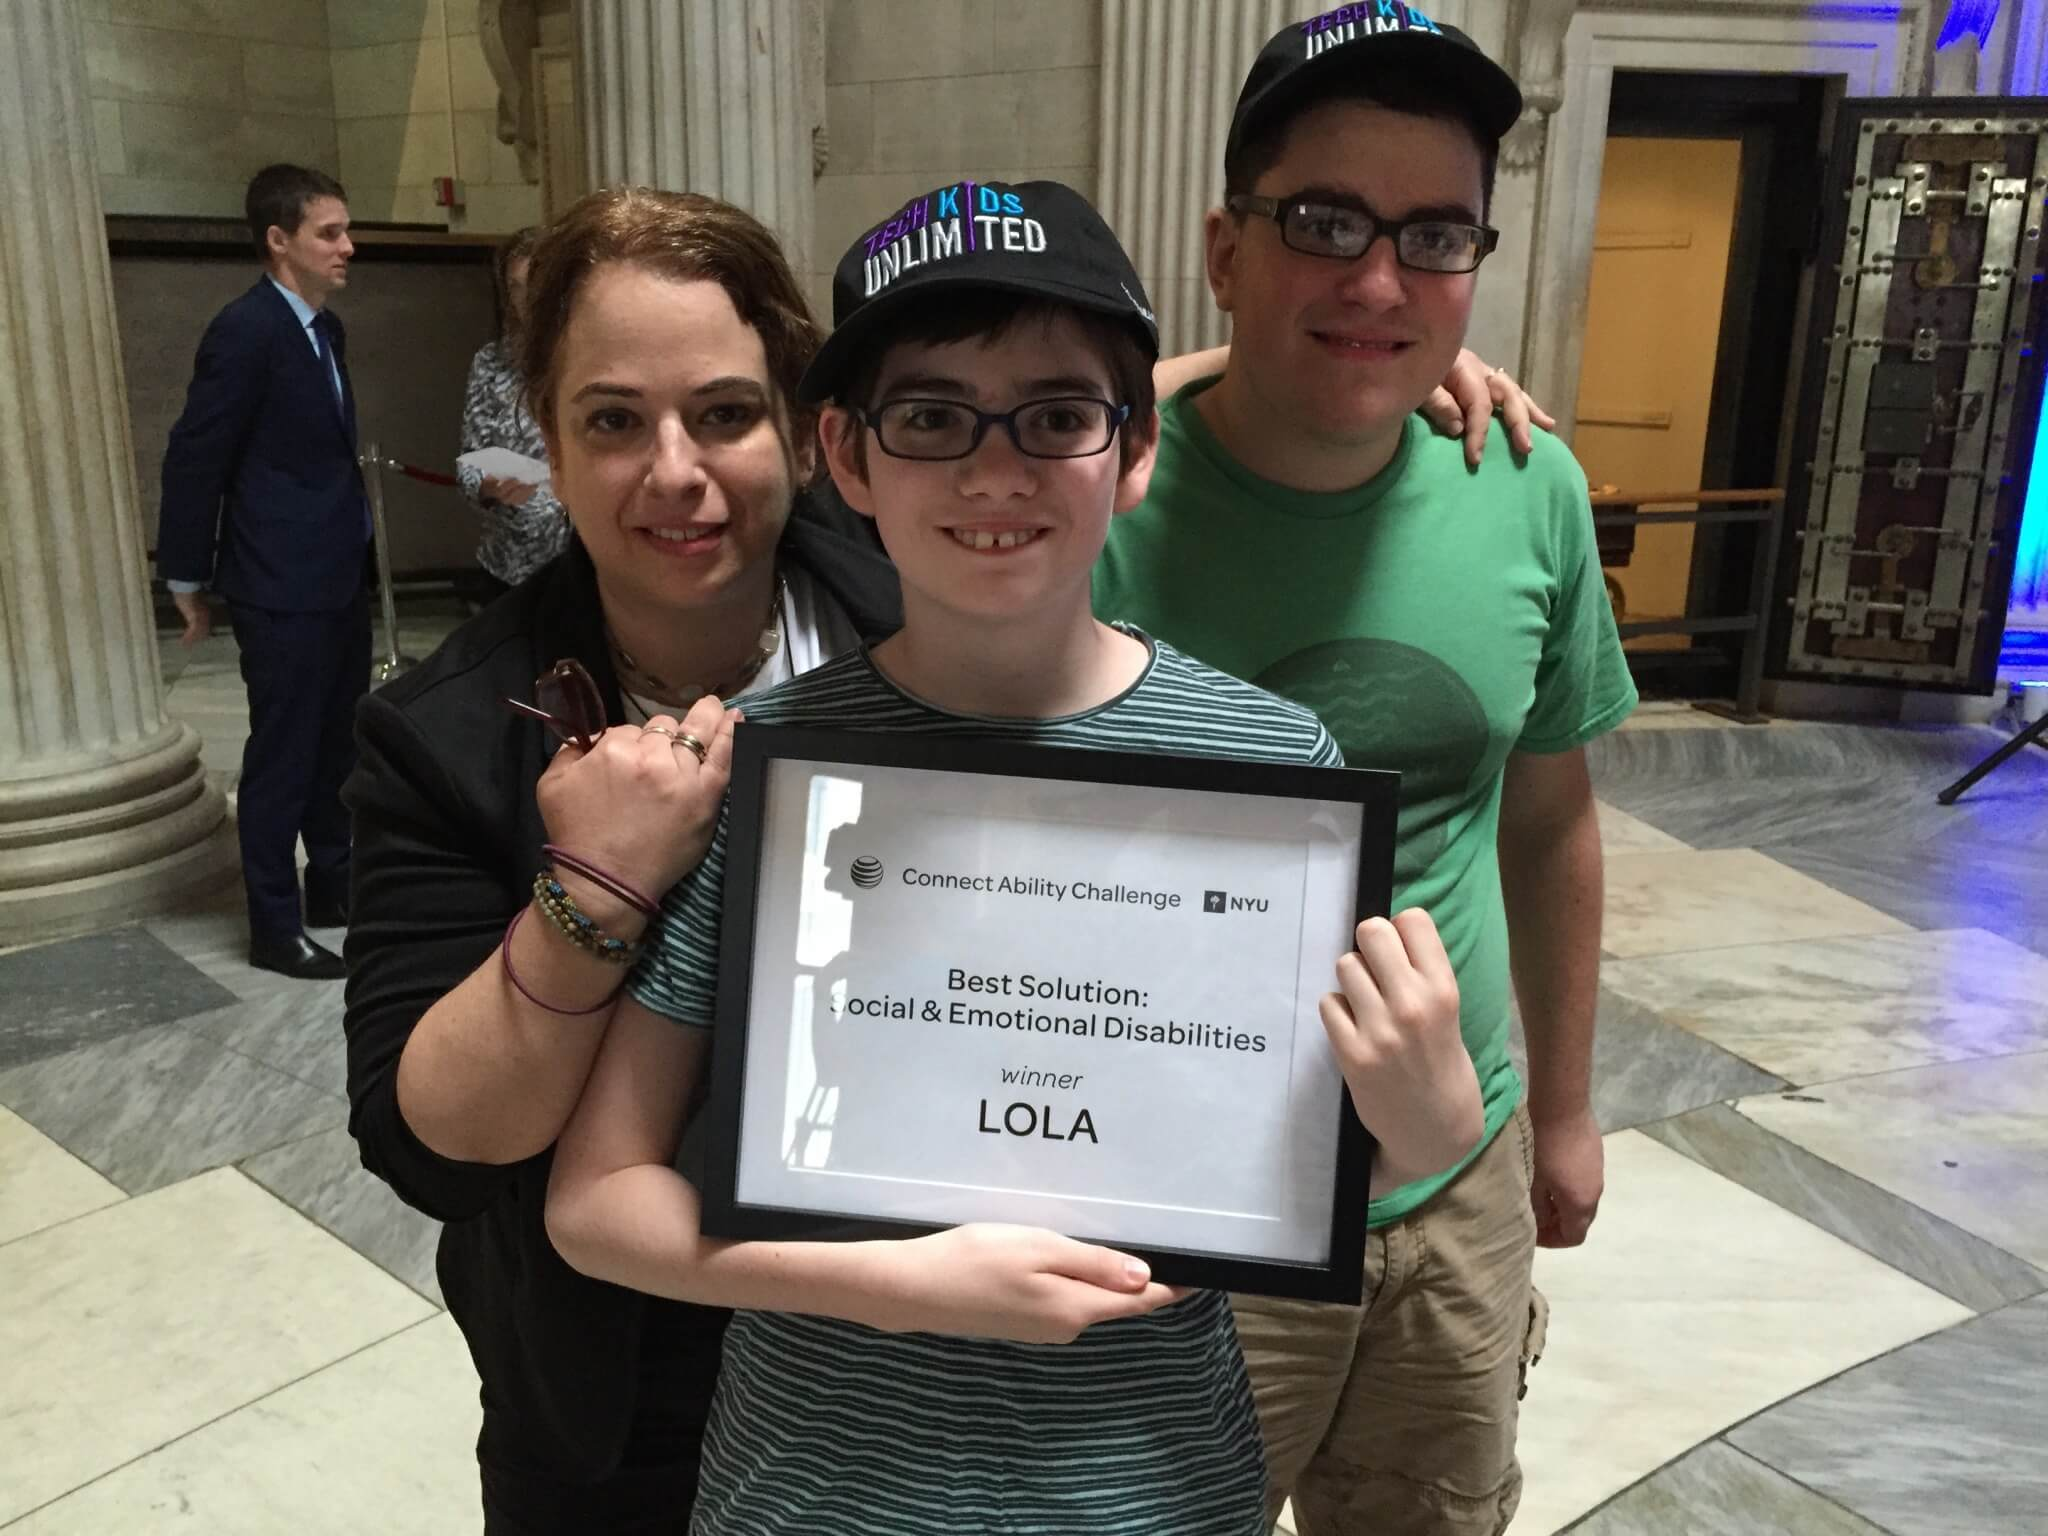 A photo of Beth, Jack and Seth receiving the Connect Ability Challenge award